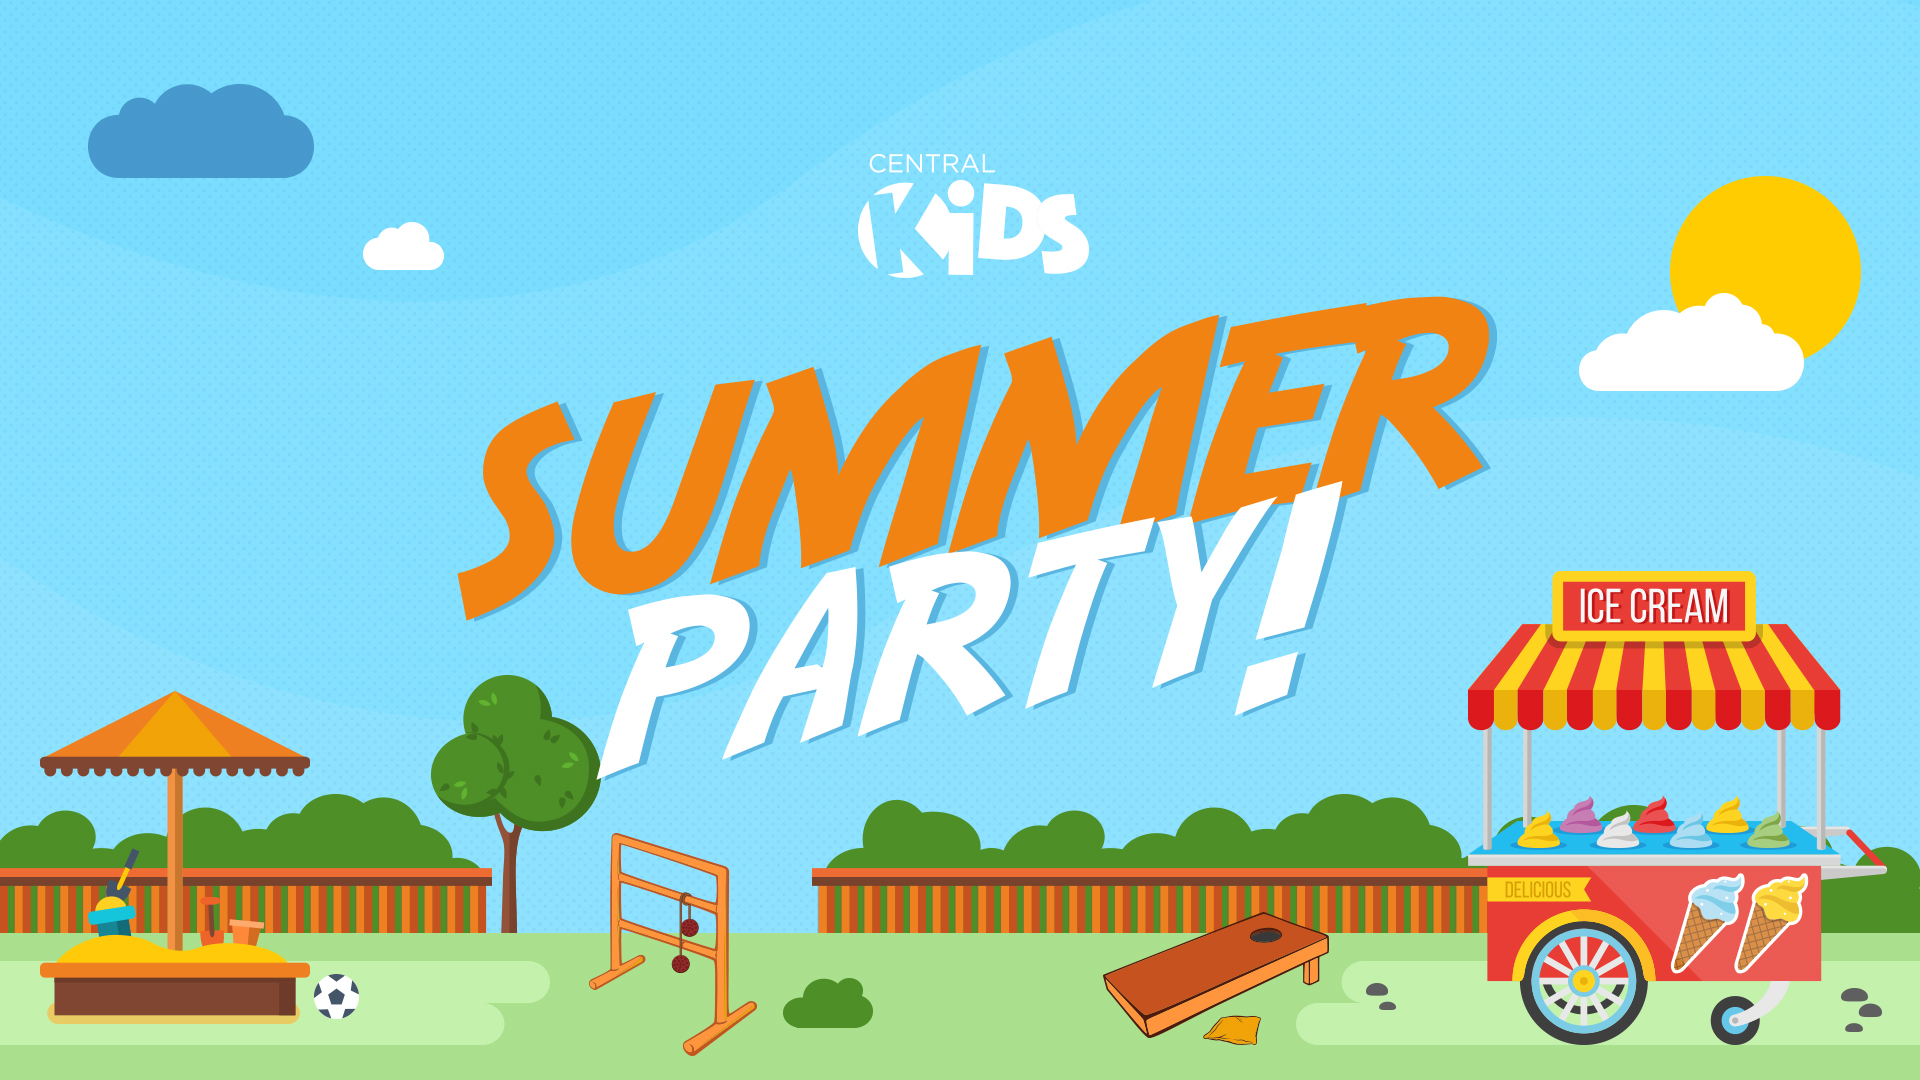 Central Kids Summer Party